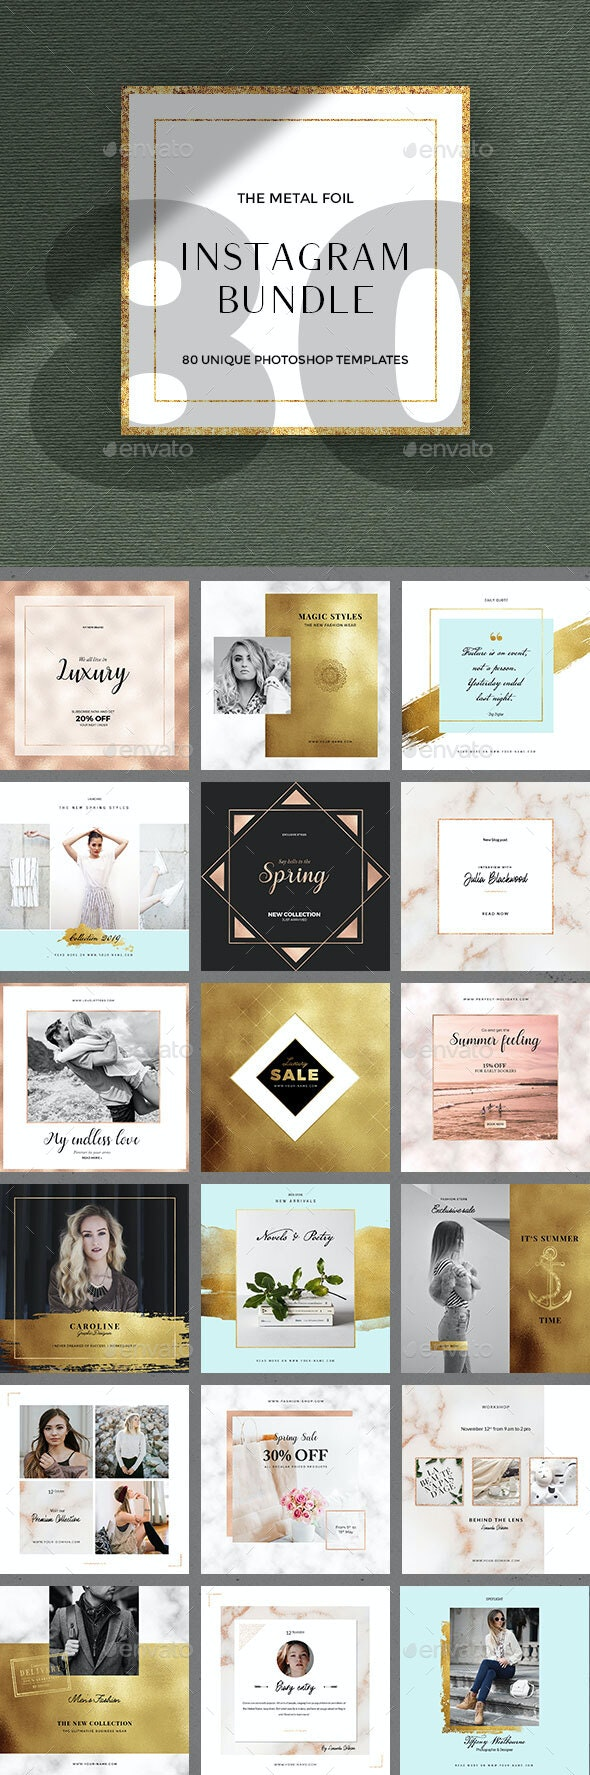 80 Instagram Posts Bundle - Metal Foil - Social Media Web Elements